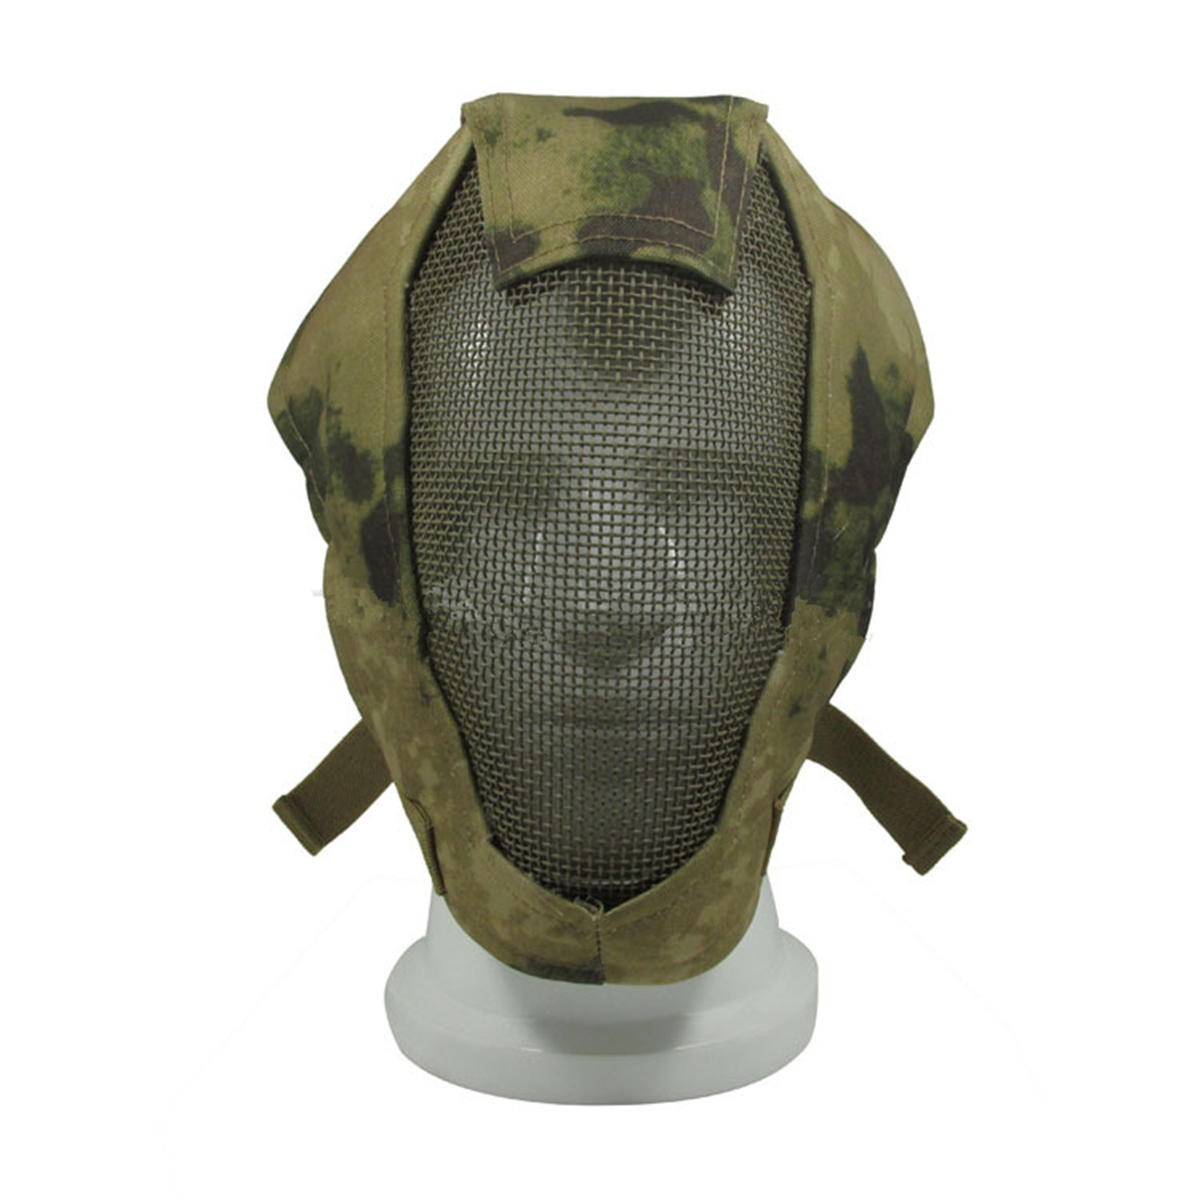 V3 Full Face Fencing Mask Iron Breathable Mesh Outdoor Tacktical Protect Masks